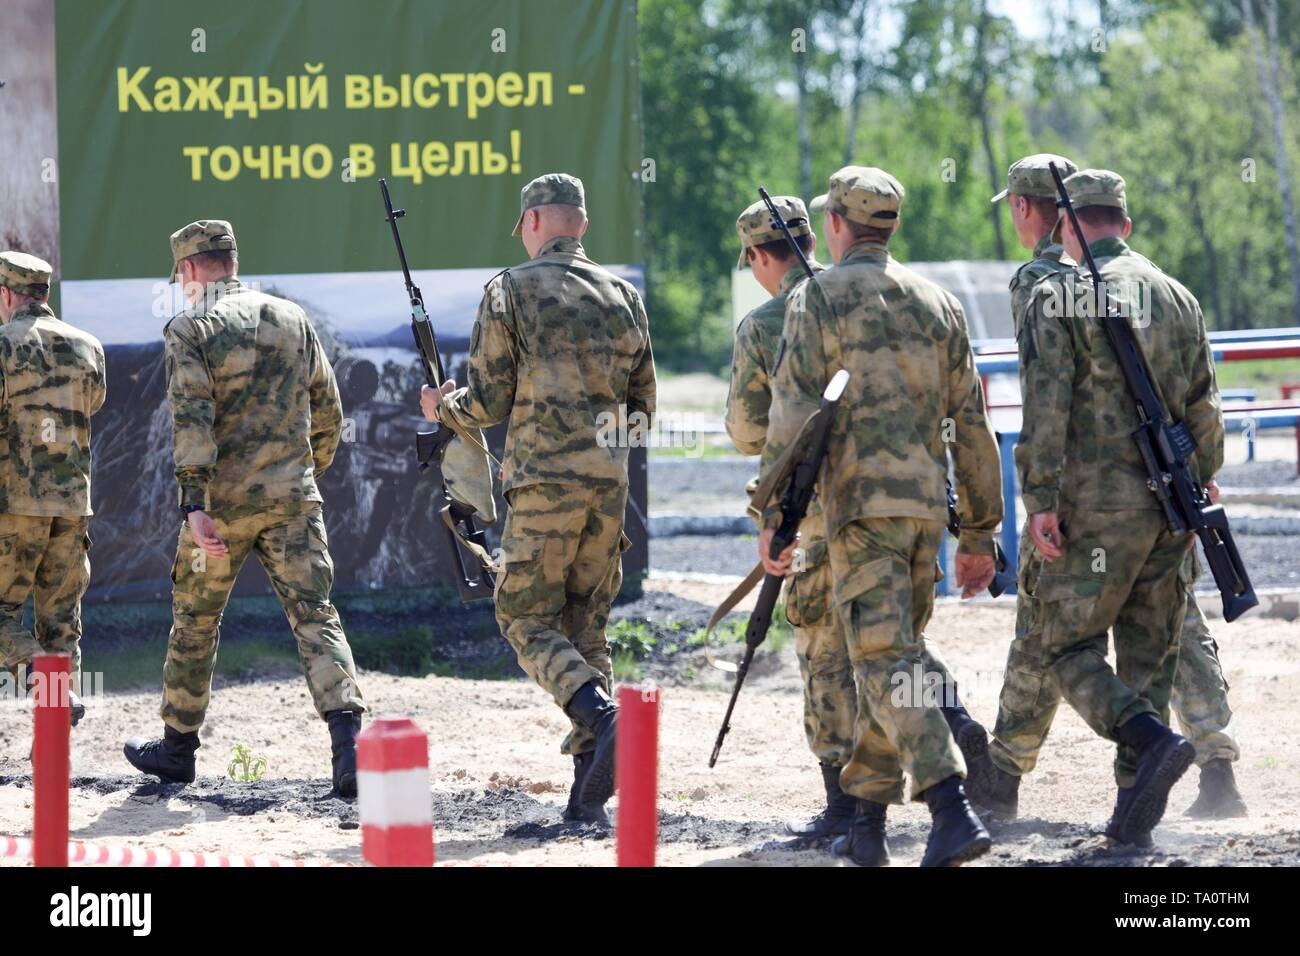 May 20, 2019. - Russia, Moscow. - All-Army field training competition among sniper units of the Russian Armed Forces at the Moscow Higher Military Command School range. - Stock Image